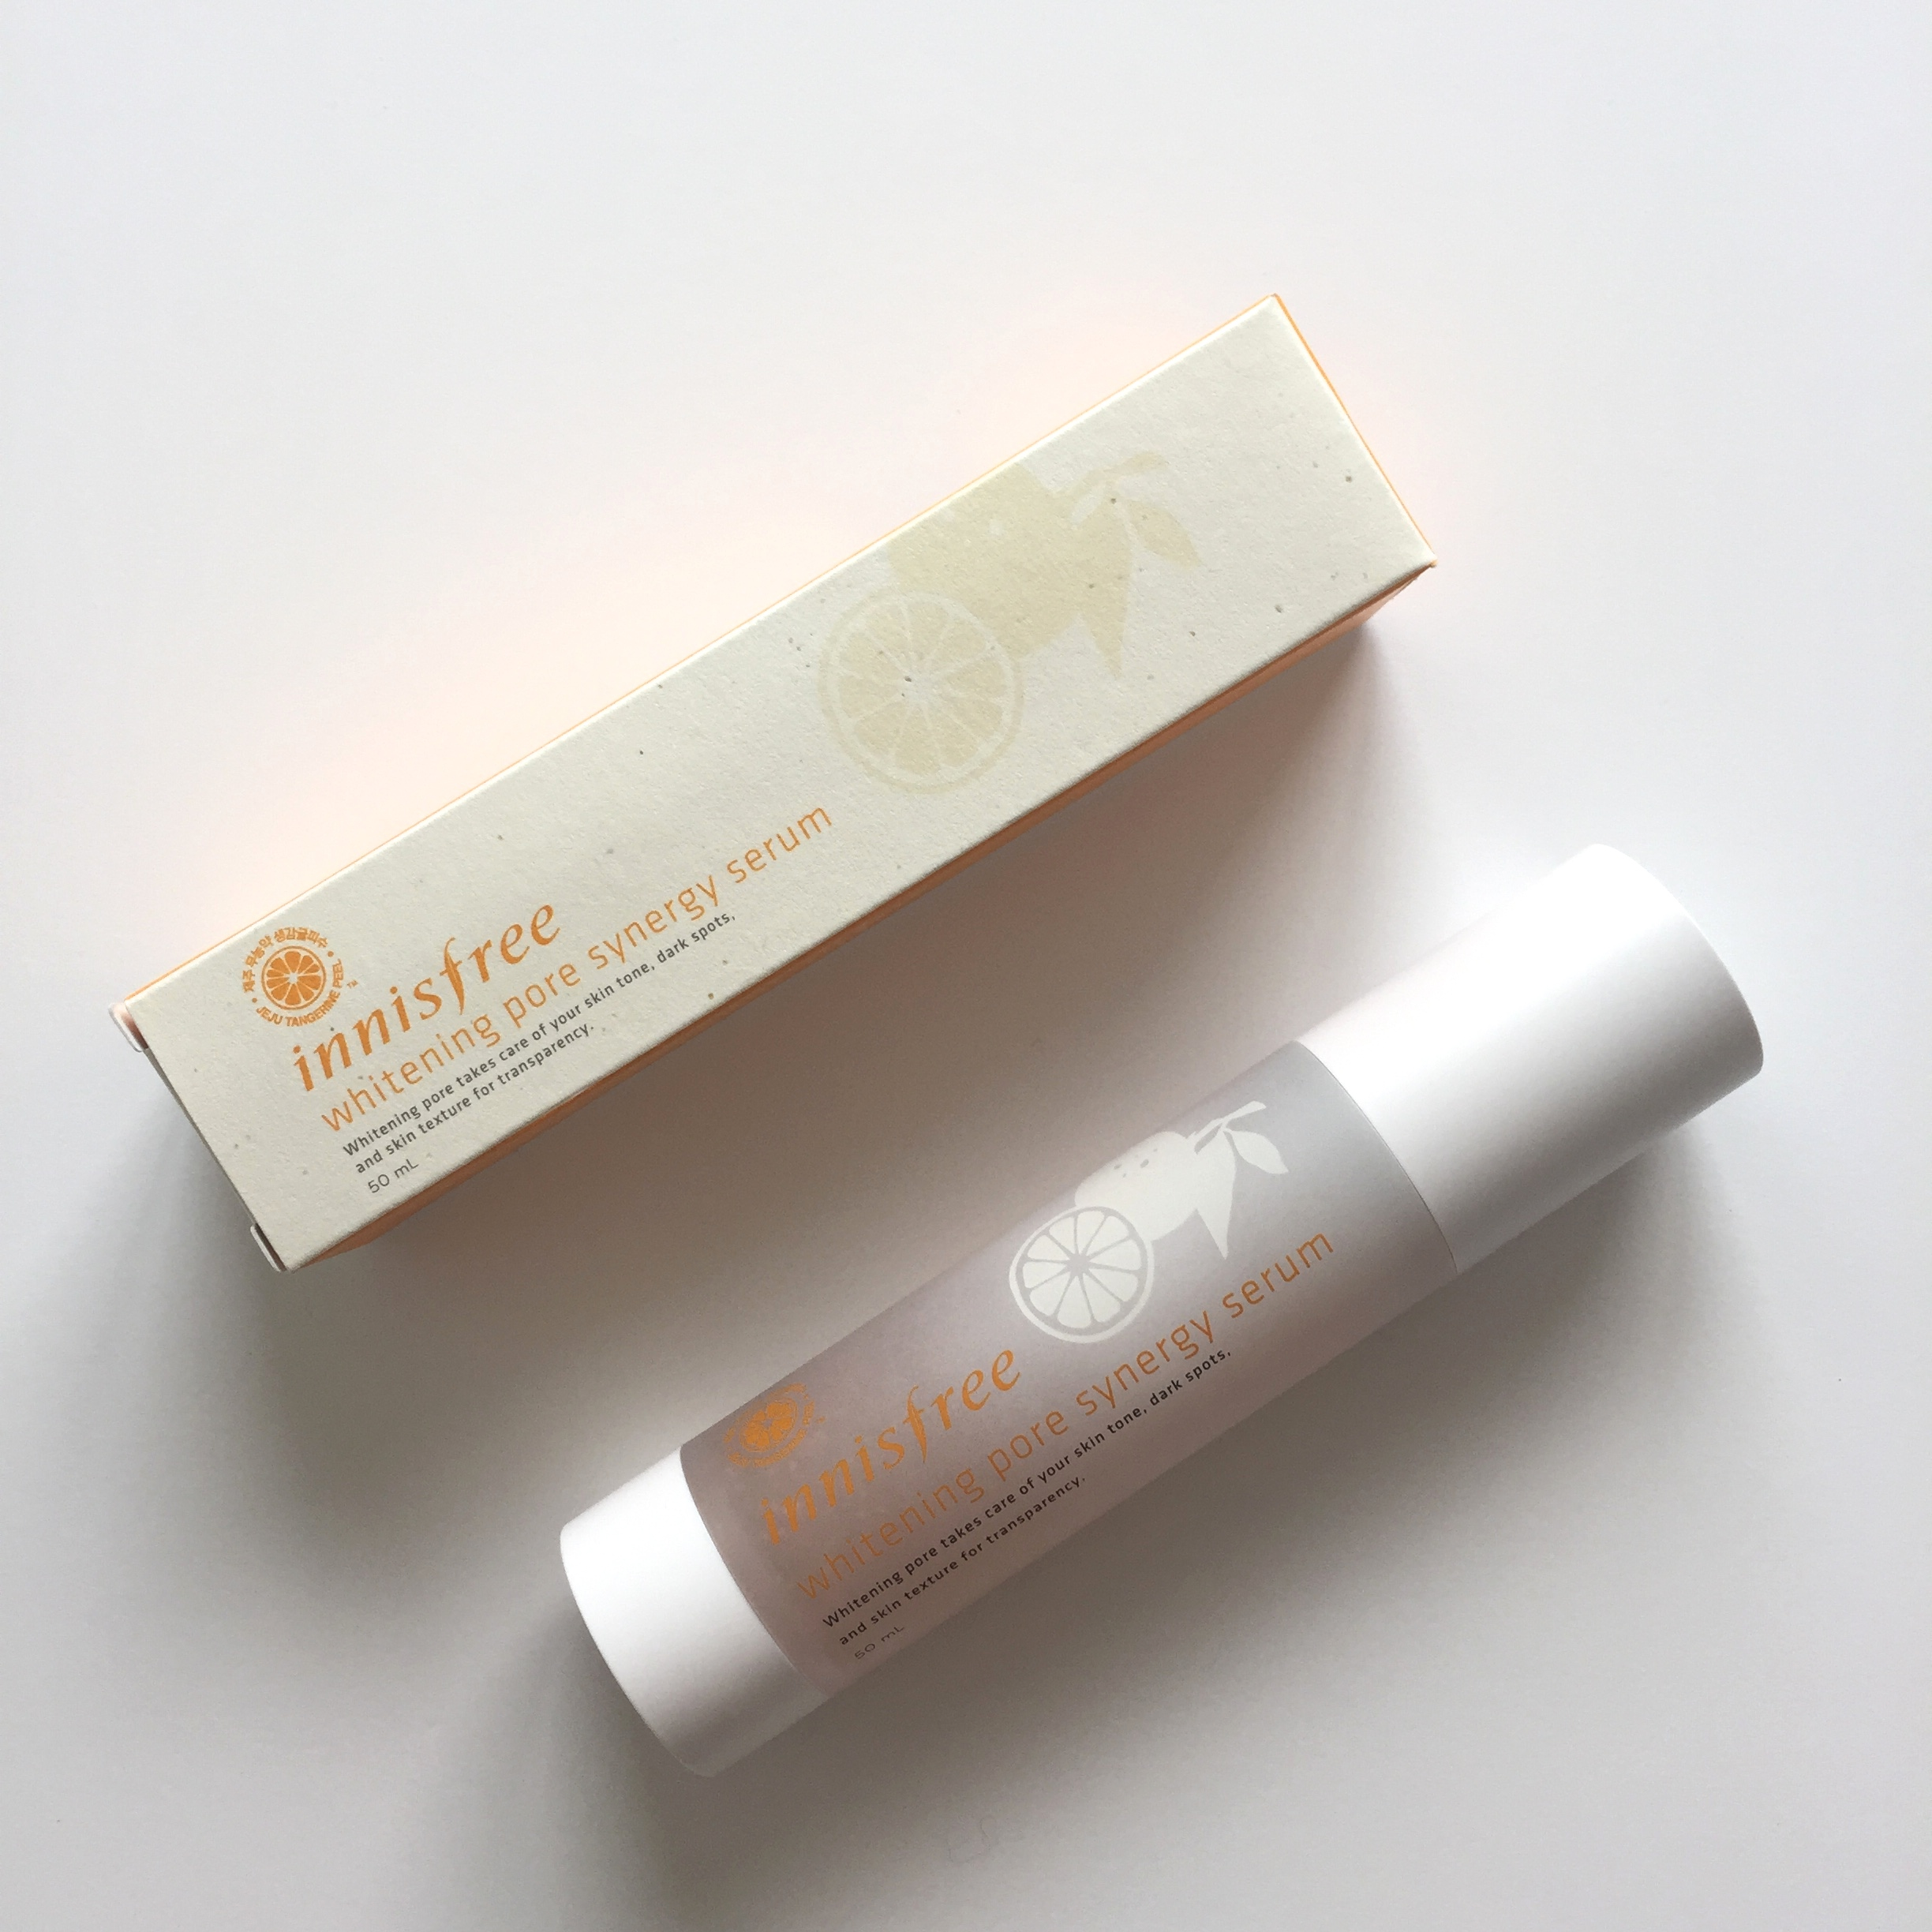 Innisfree Vitamin C Whitening Serum Review